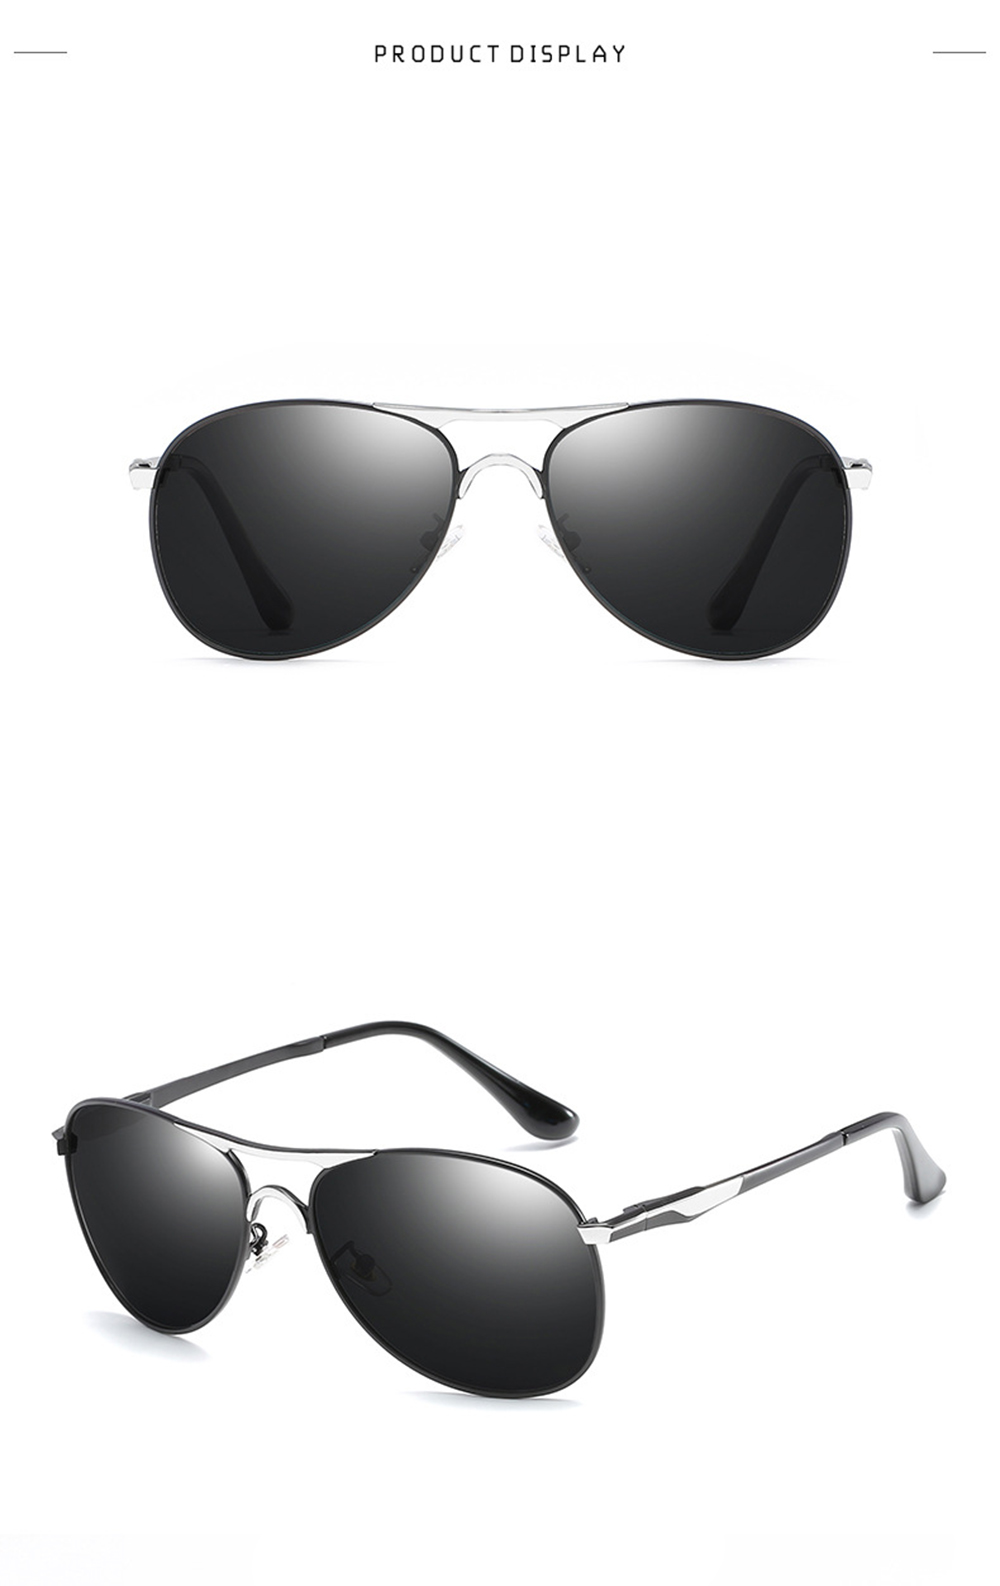 e0bef4b608 designer glasses are necessary for us in sunning days especially hot summer.  The reason why sunglasses uk are so popular is that they are not only very  ...